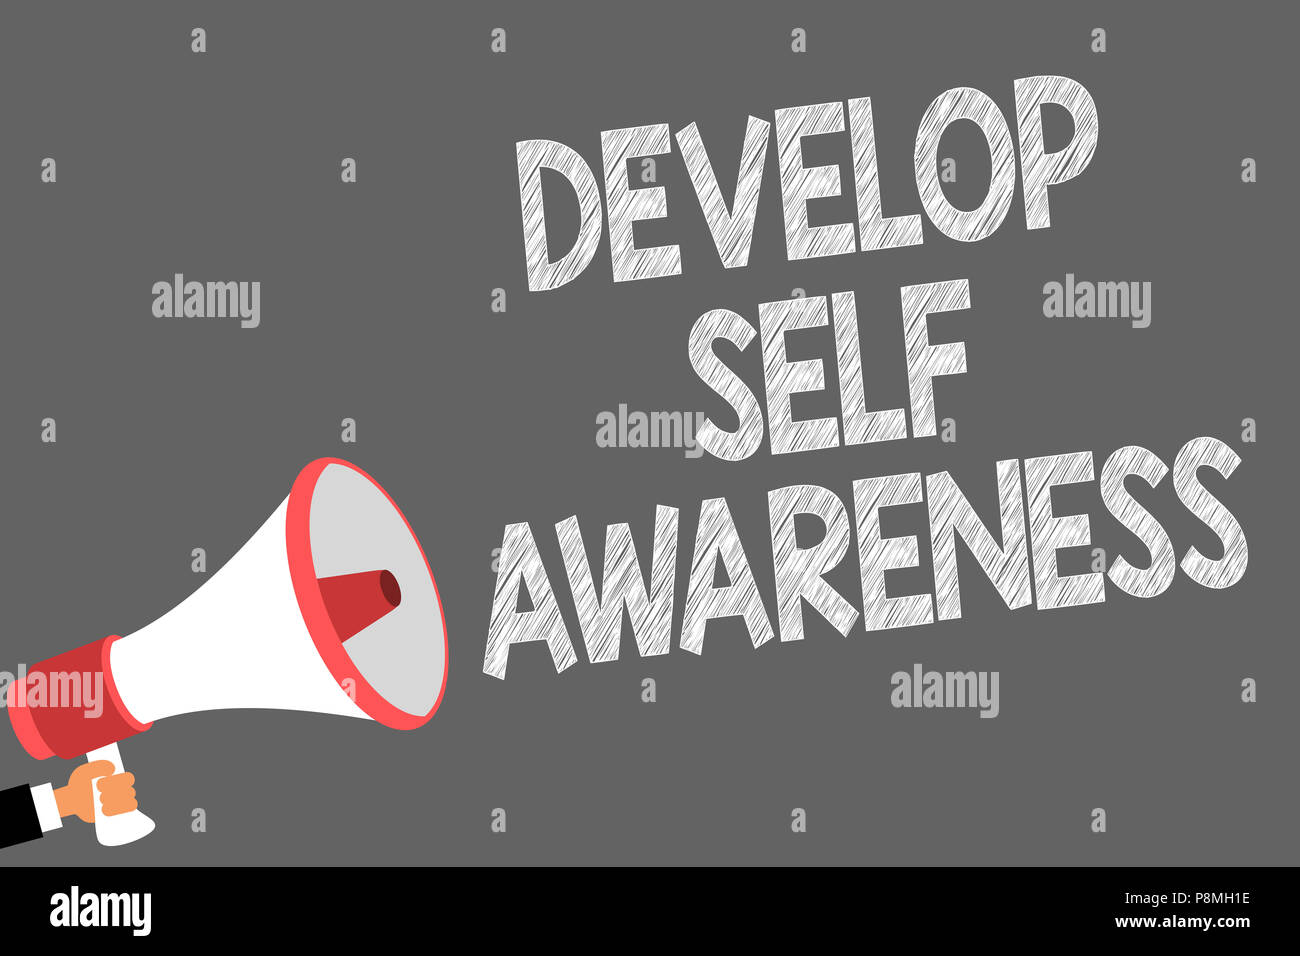 Text sign showing Develop Self Awareness. Conceptual photo increase conscious knowledge of own character Symbols speaker alarming warning sound indica - Stock Image